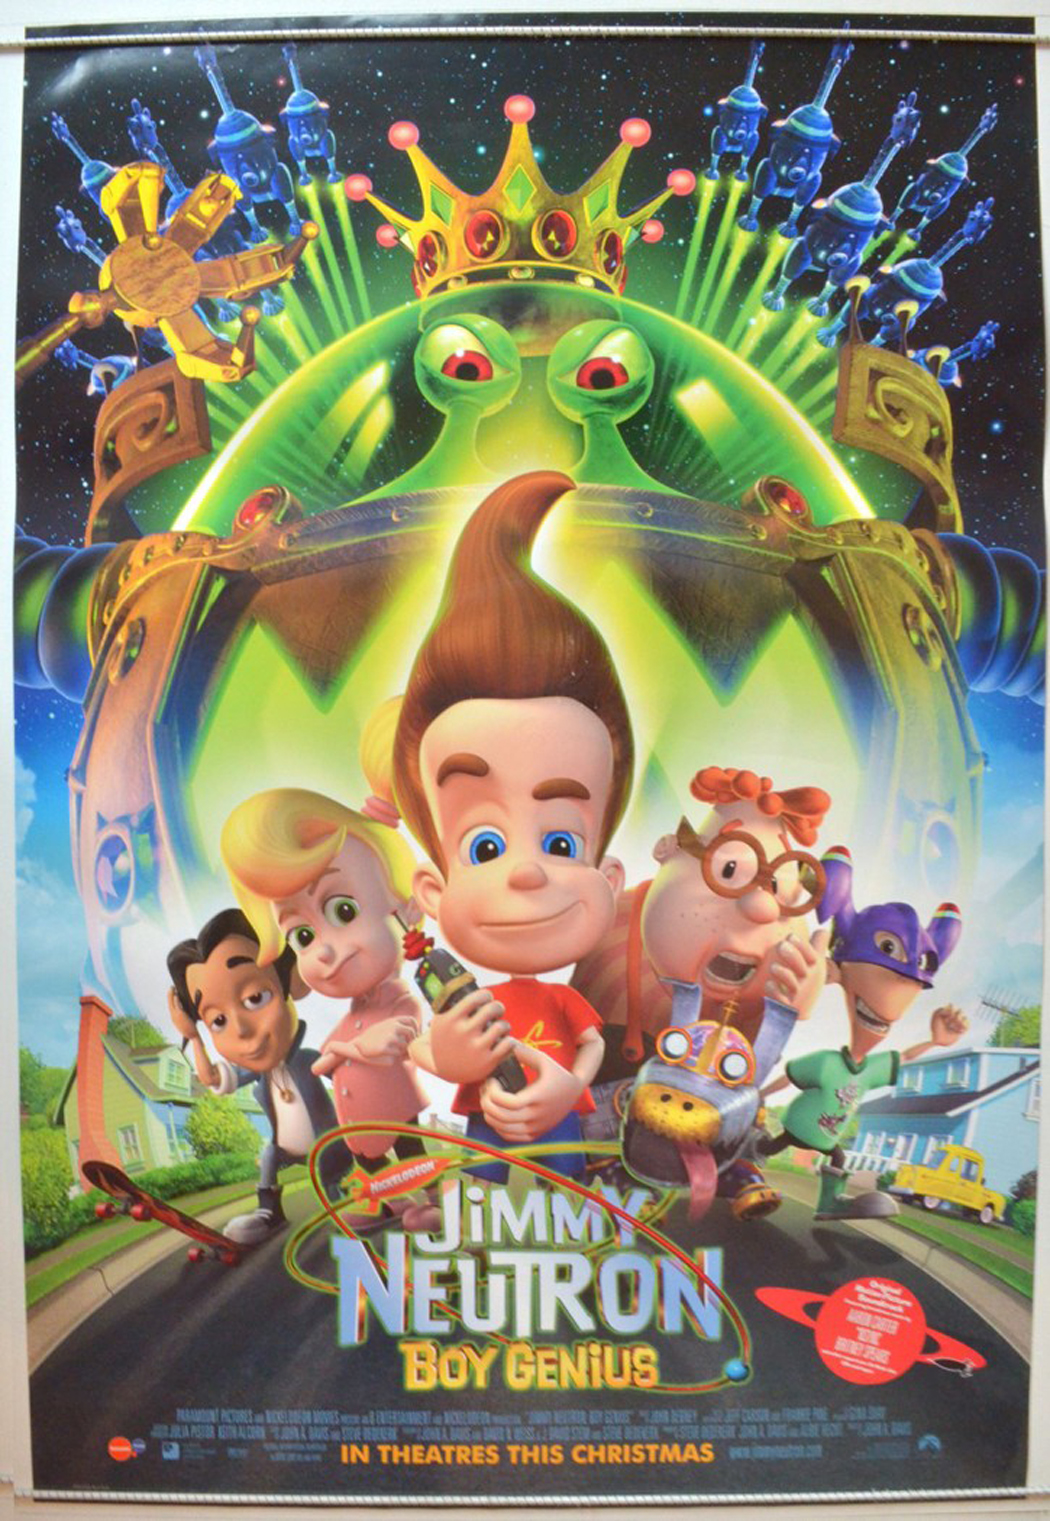 Jimmy Neutron Boy Genius Original Cinema Movie Poster